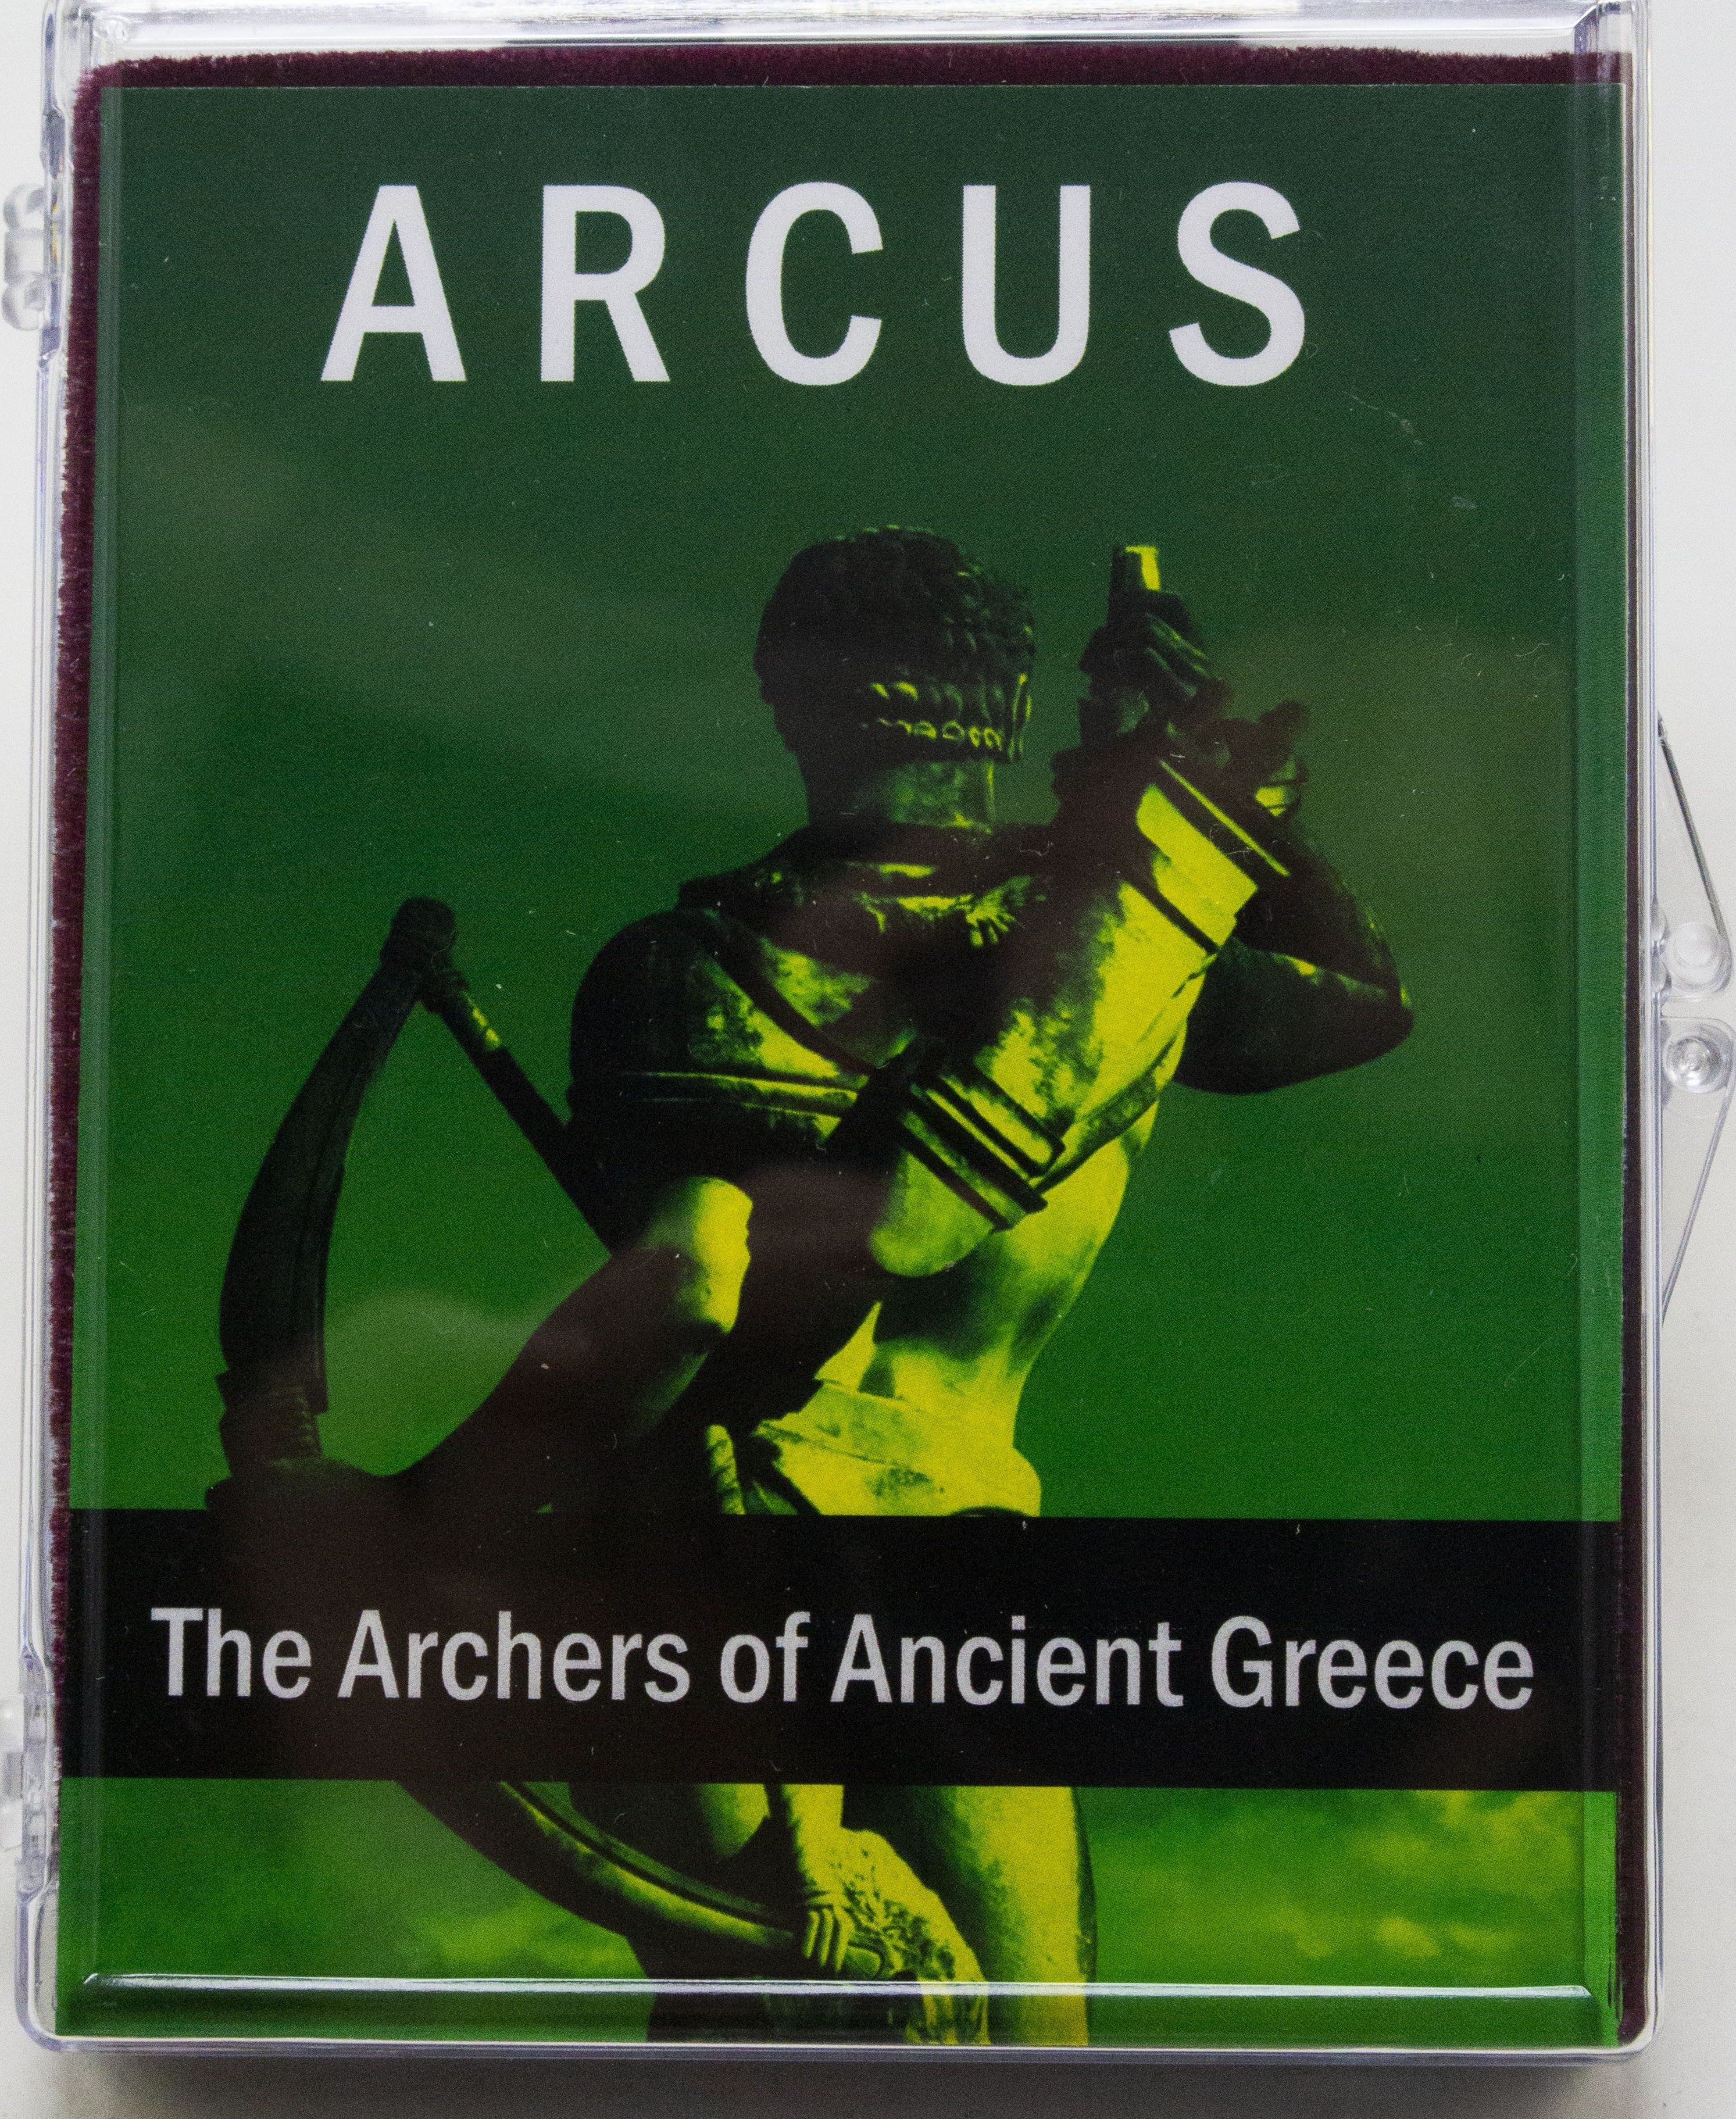 Archers of Ancient Greece